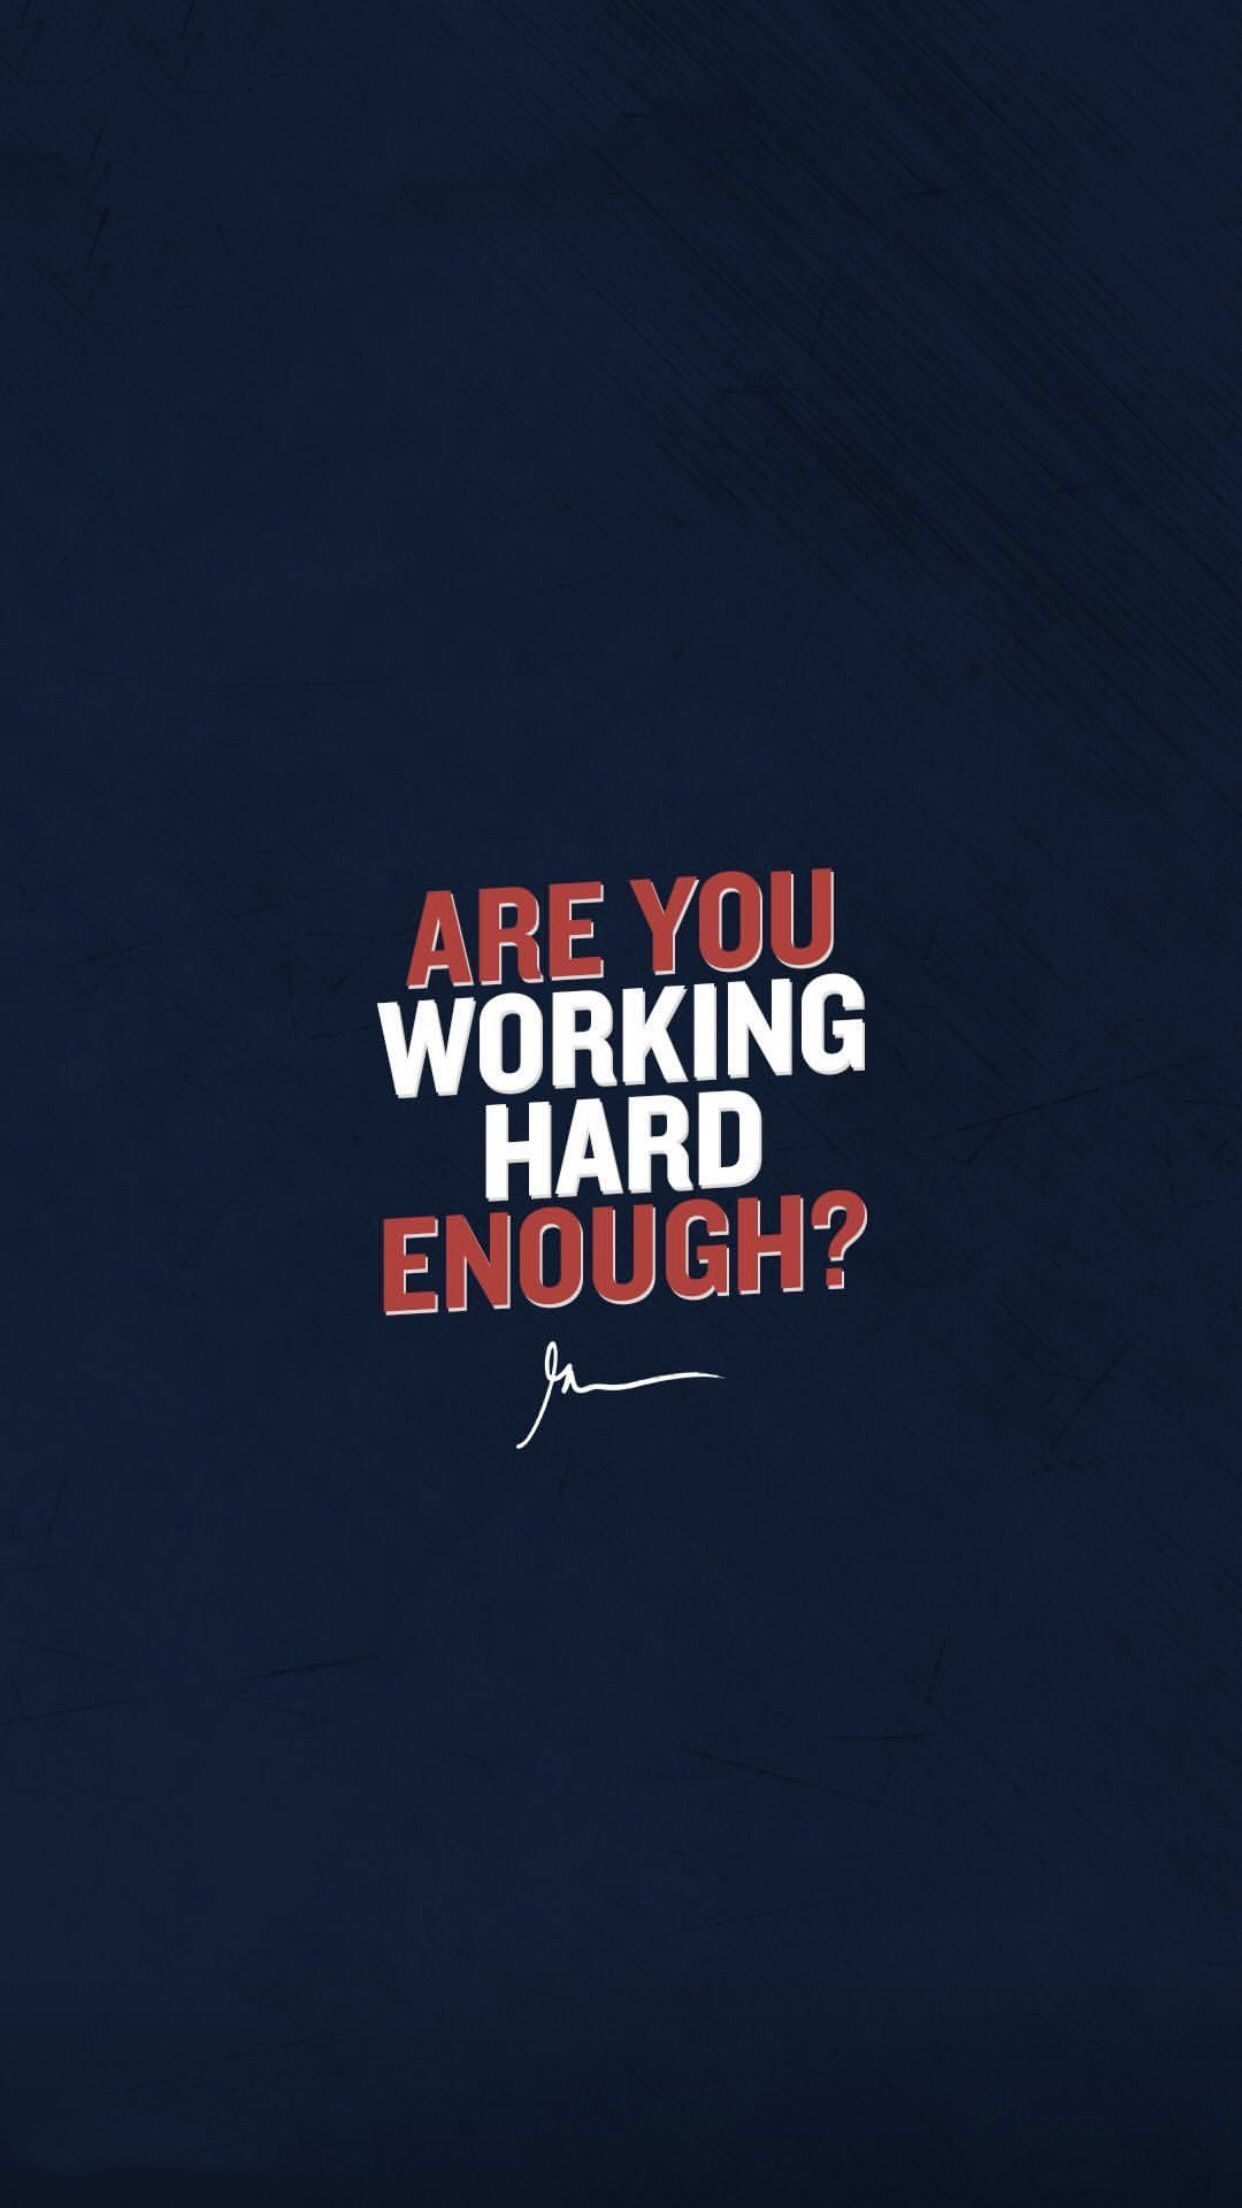 Gary Vee Words Of Wisdom Motivational Quotes Quotes Wallpaper